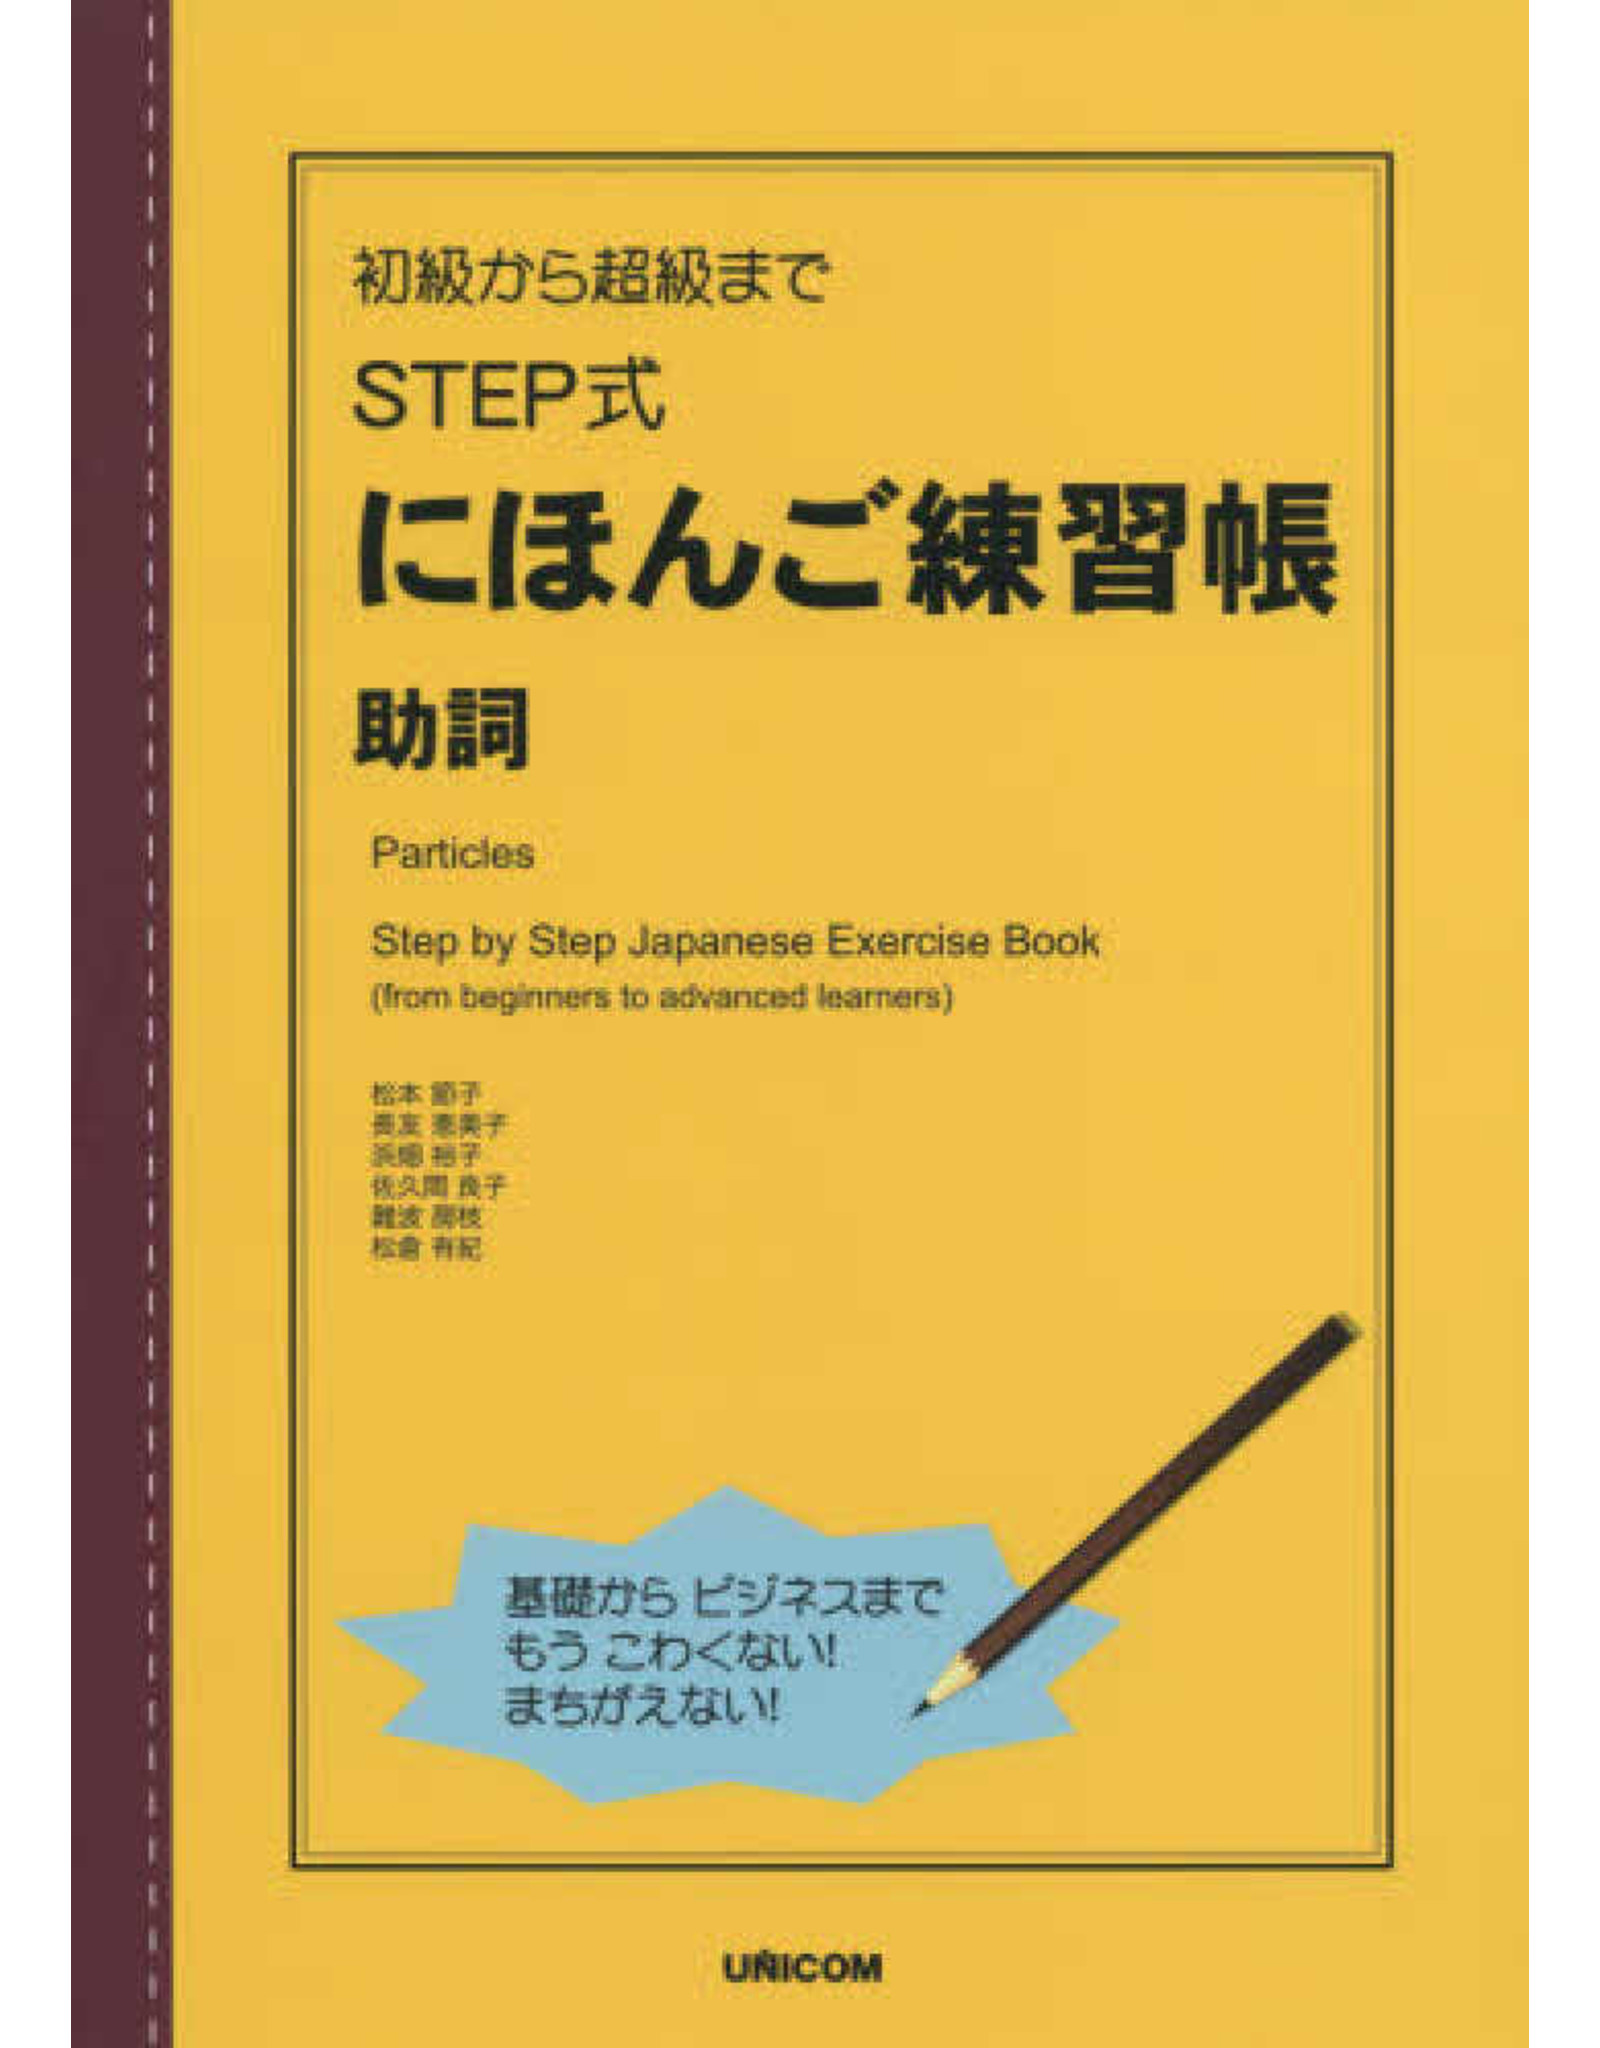 UNICOM STEP BY STEP JAPANESE EXERCISE BOOK - PARTICLES